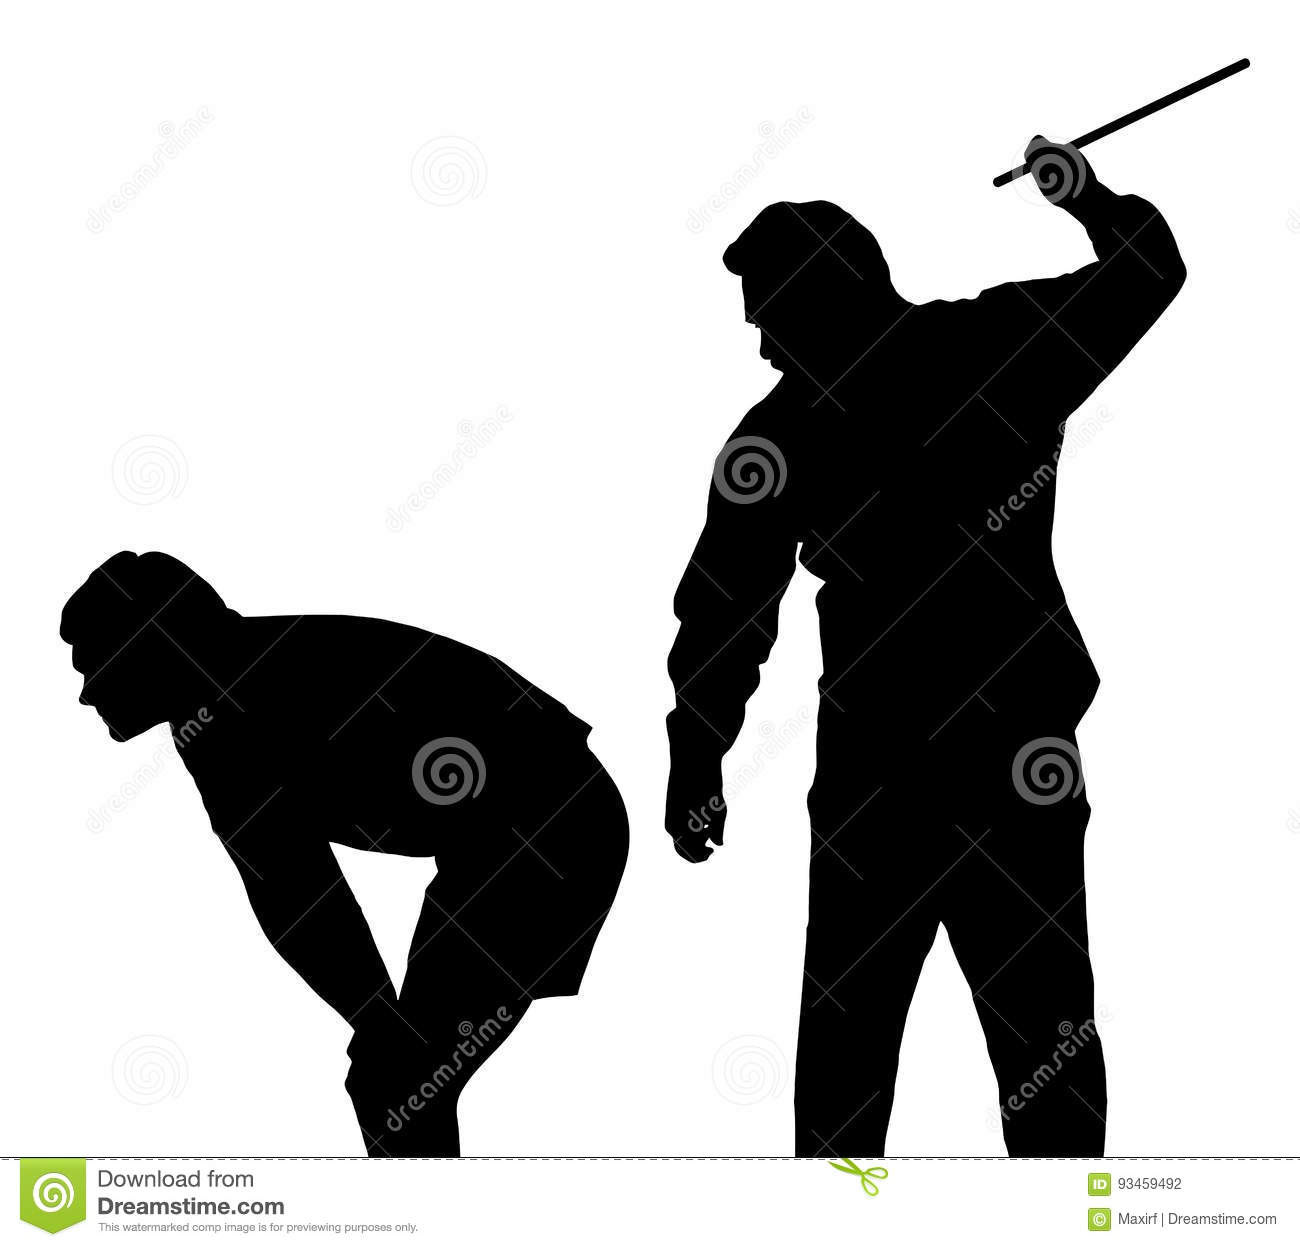 Silhouette of a men applying corporal punishment on teenage boy